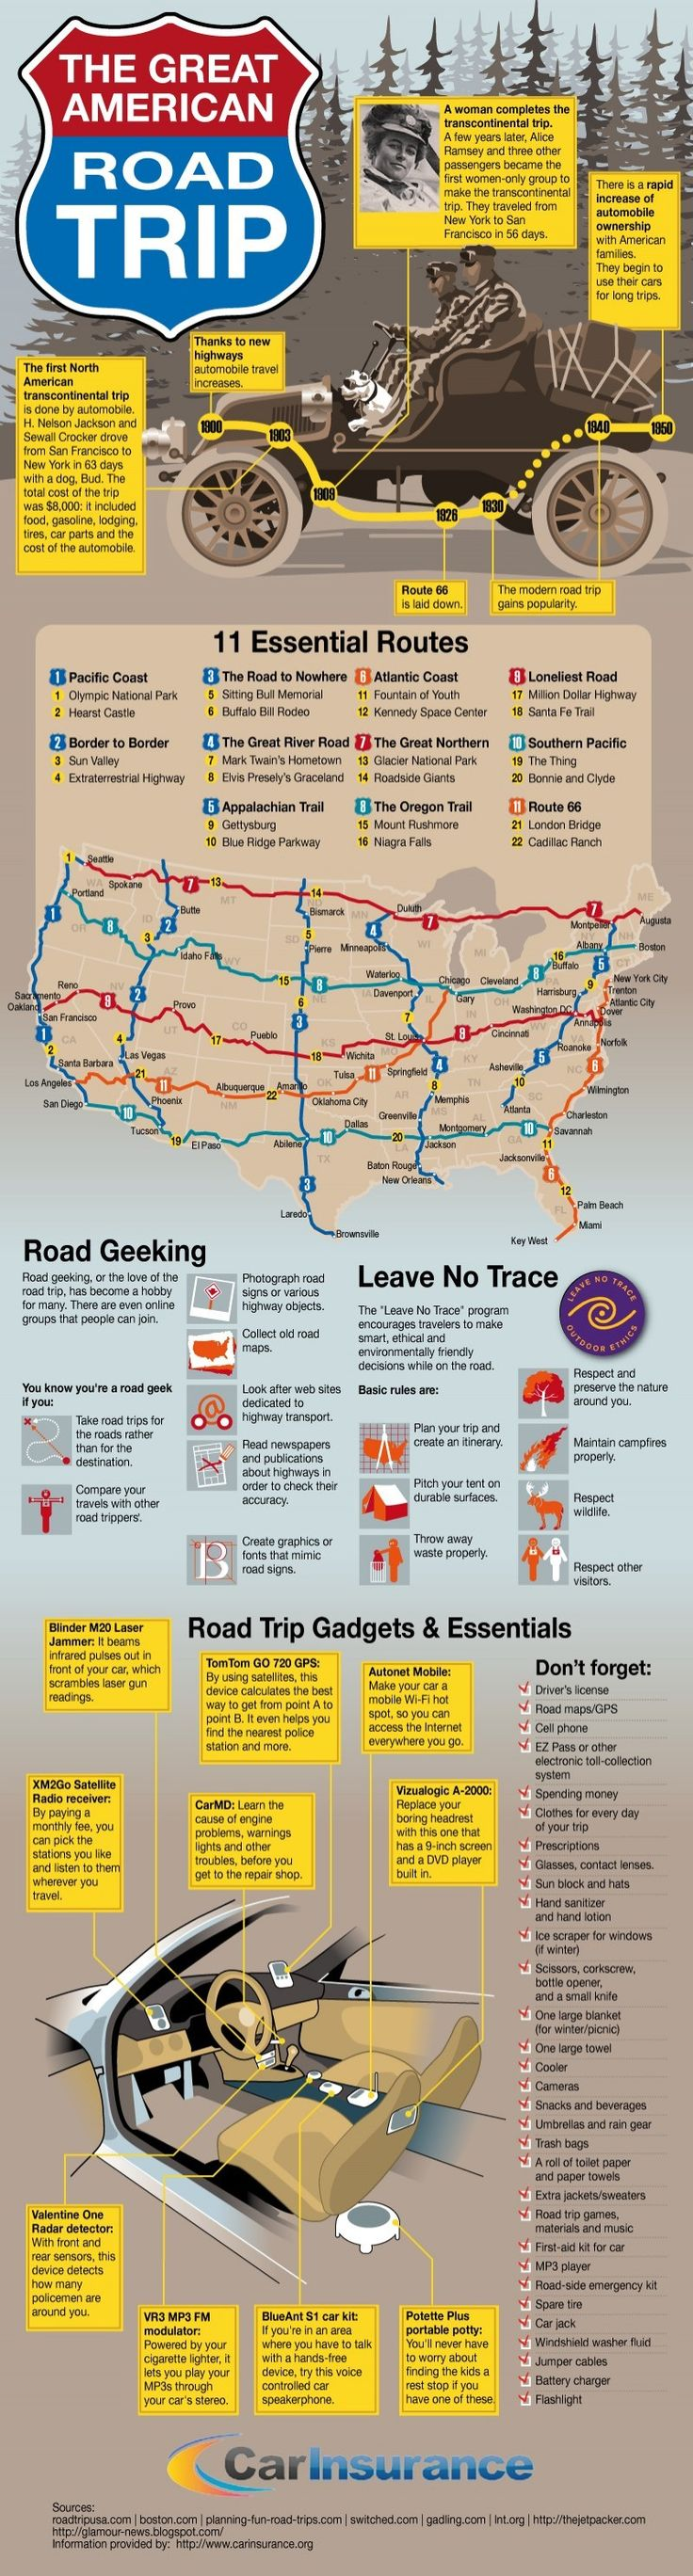 Roadtrip Across America 11 Essential Road Trip Routes Tips Facts One Thing On My Bucket List Is To Do This As Soon As I Sell A Million Perfect